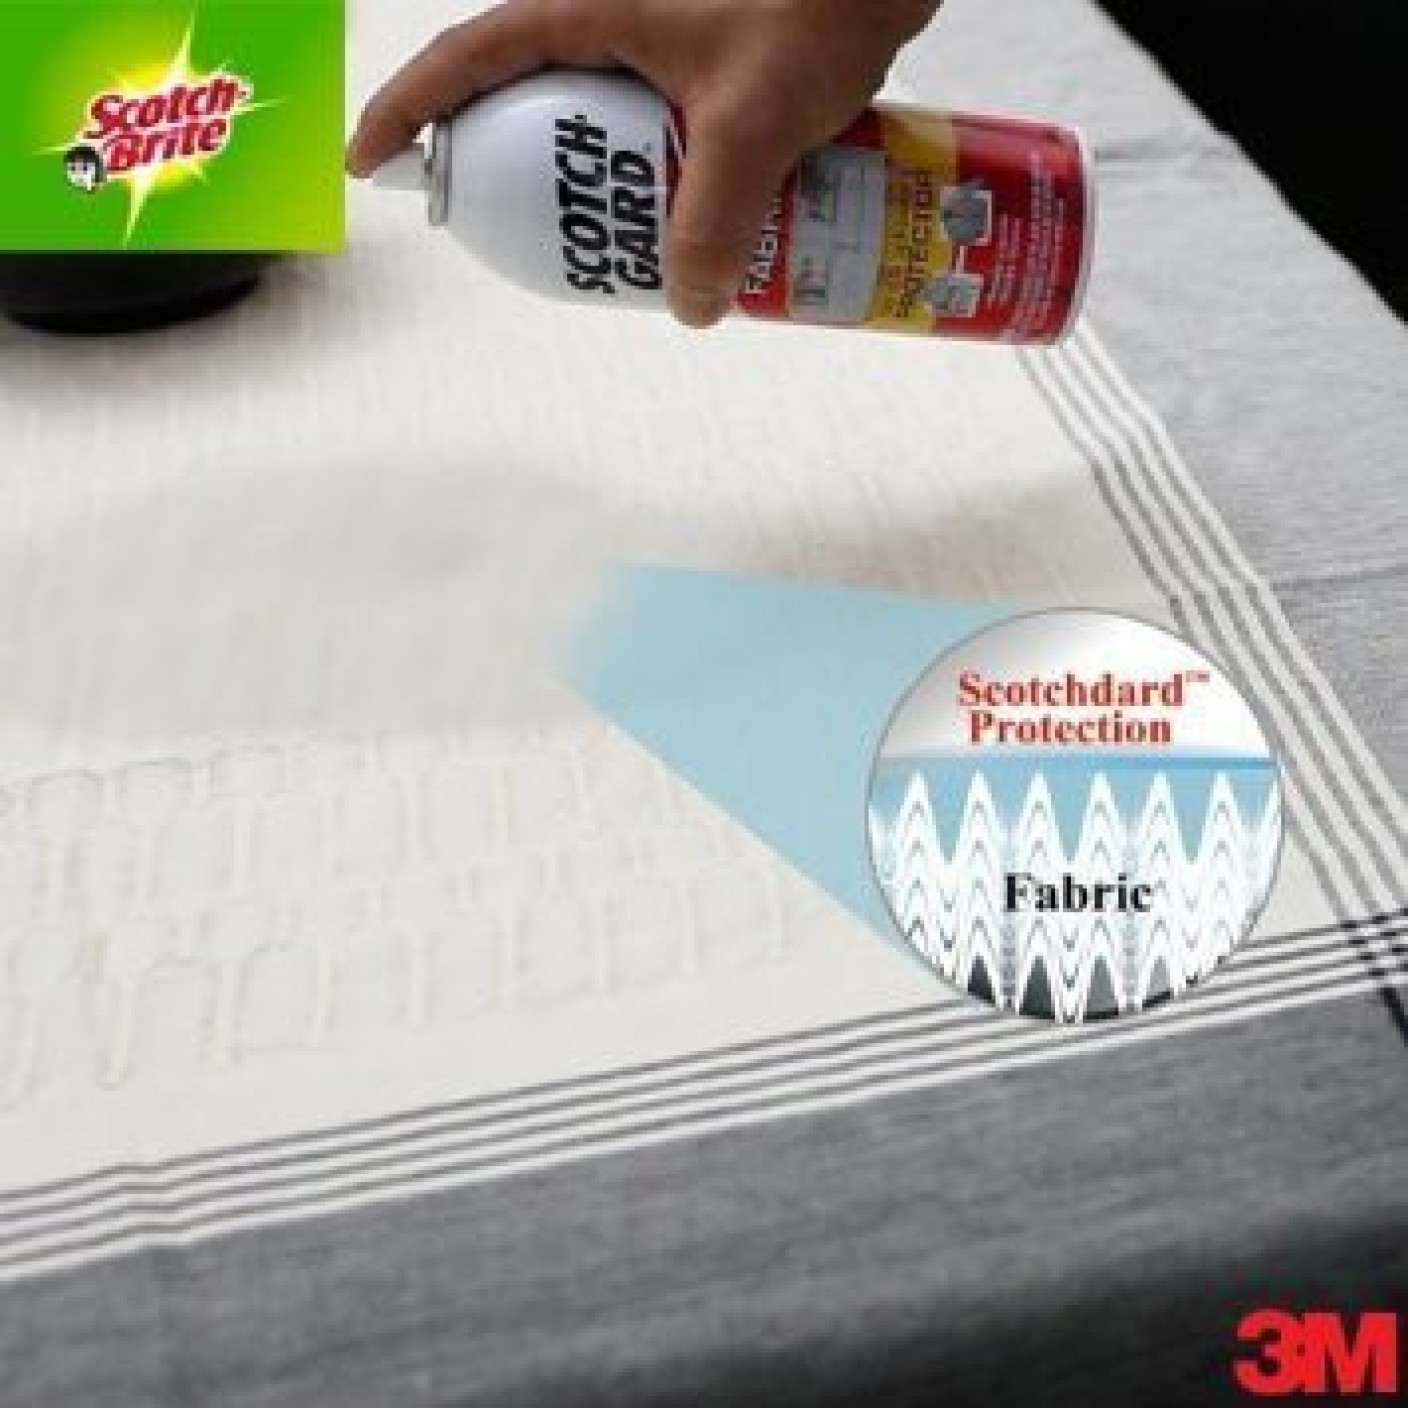 3m scotchgard fabric protector faup01 vehicle interior cleaner price in india buy 3m. Black Bedroom Furniture Sets. Home Design Ideas